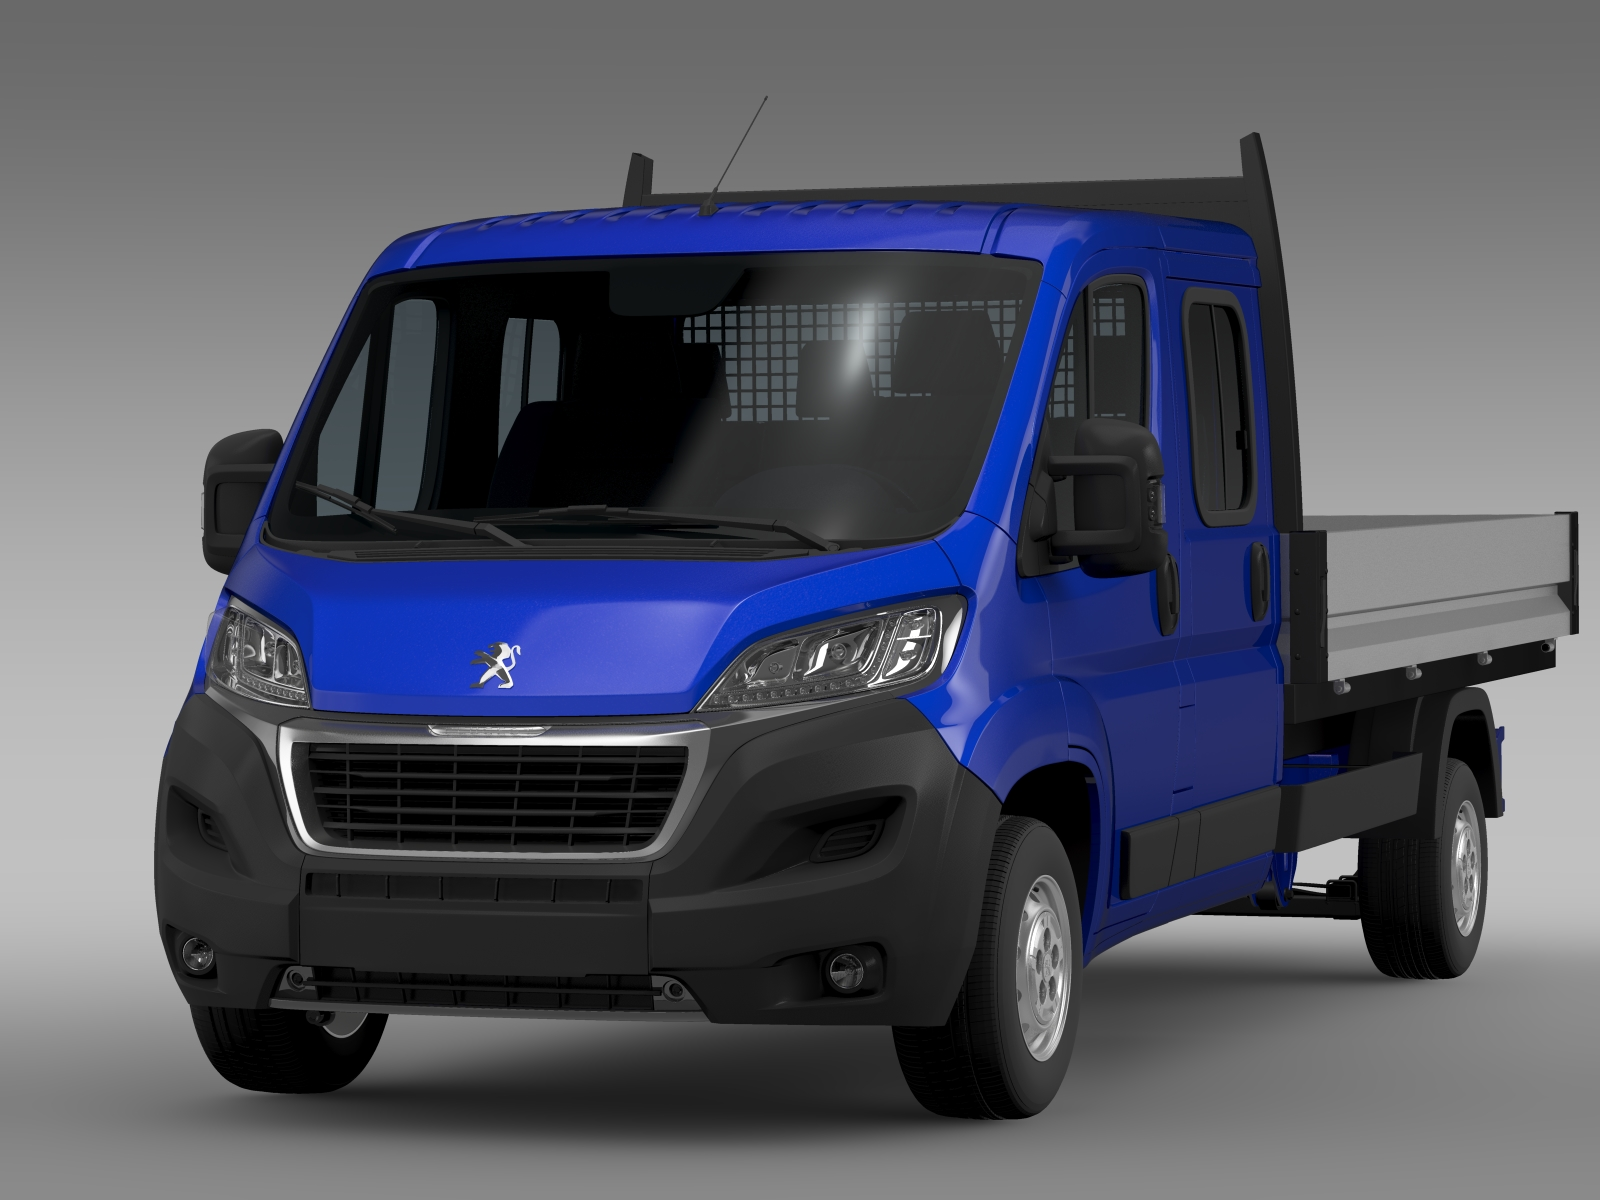 peugeot boxer crew cab truck 2016 3d model buy peugeot boxer crew cab truck 2016 3d model. Black Bedroom Furniture Sets. Home Design Ideas